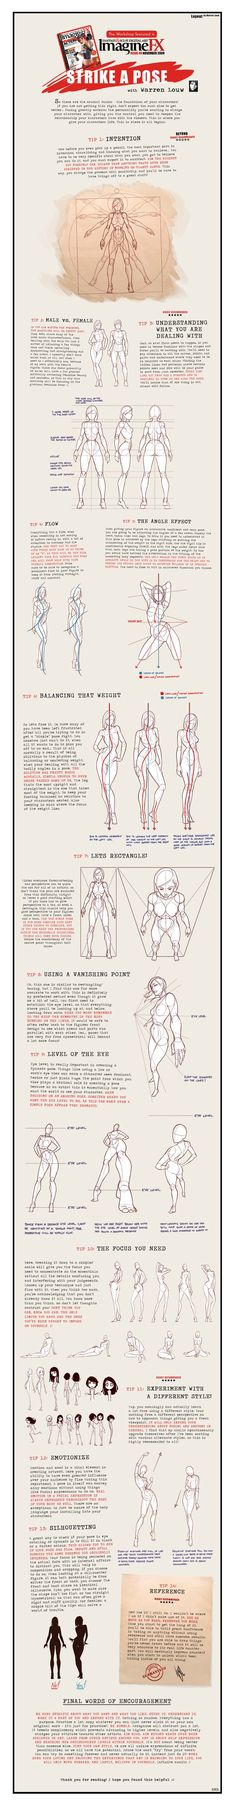 How to make your anime girl strike a cool pose anime drawing tutorial.